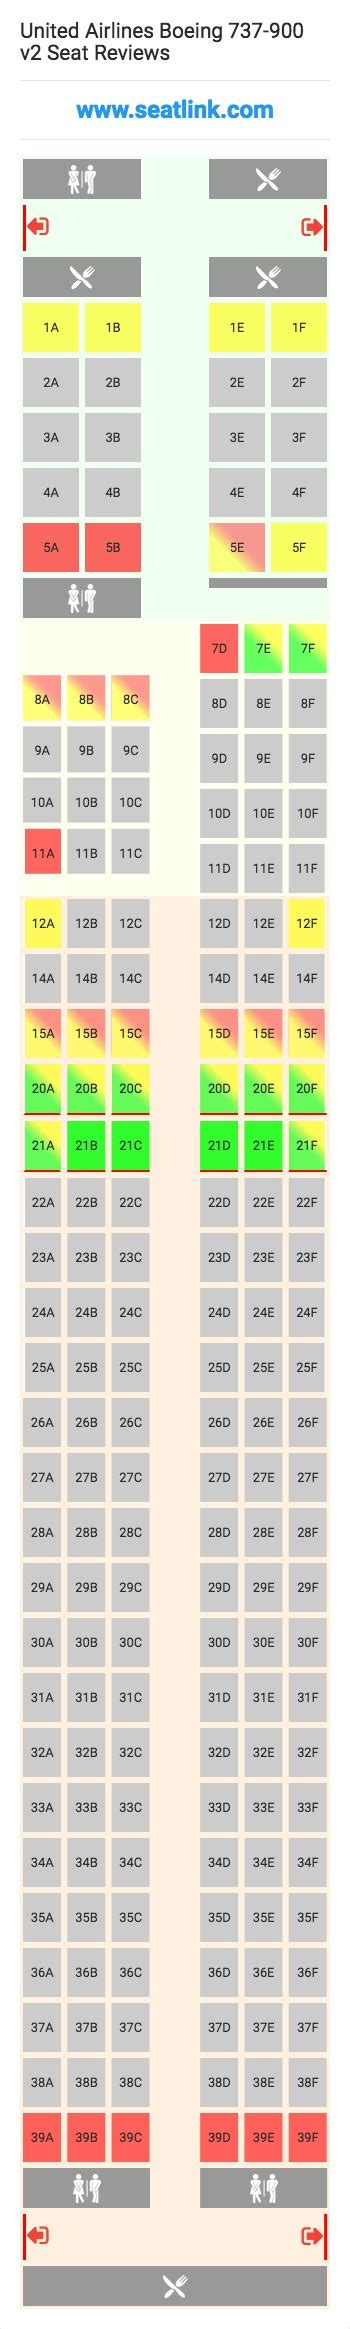 b737 900 config 1 korean air seat maps reviews united airlines boeing 737 900 v2 seating chart updated